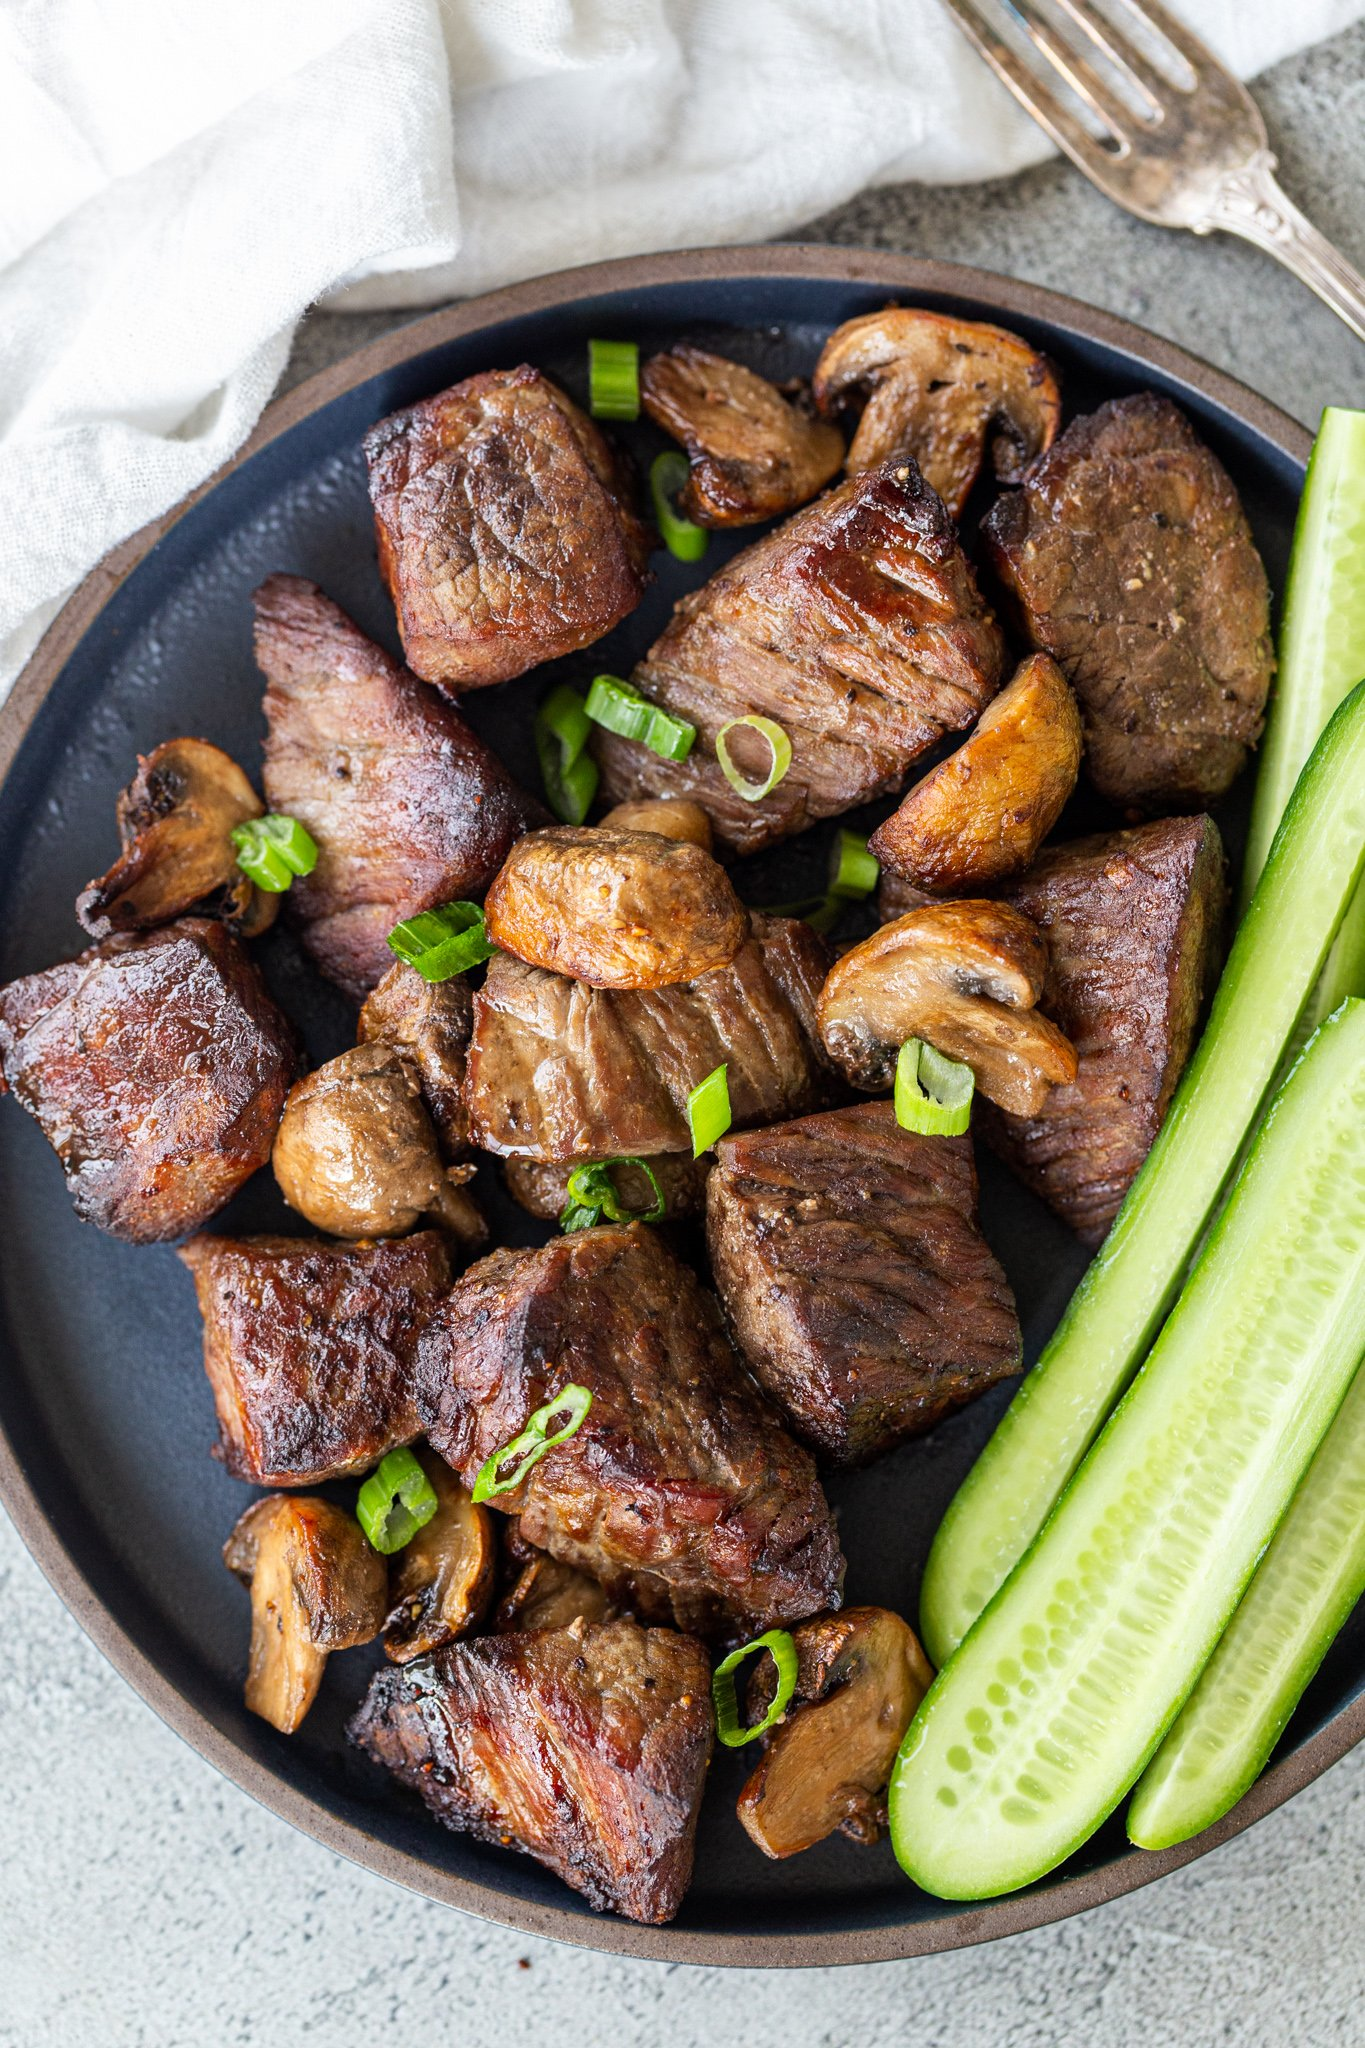 Air fryer steak bites in on a plate with cucumbers